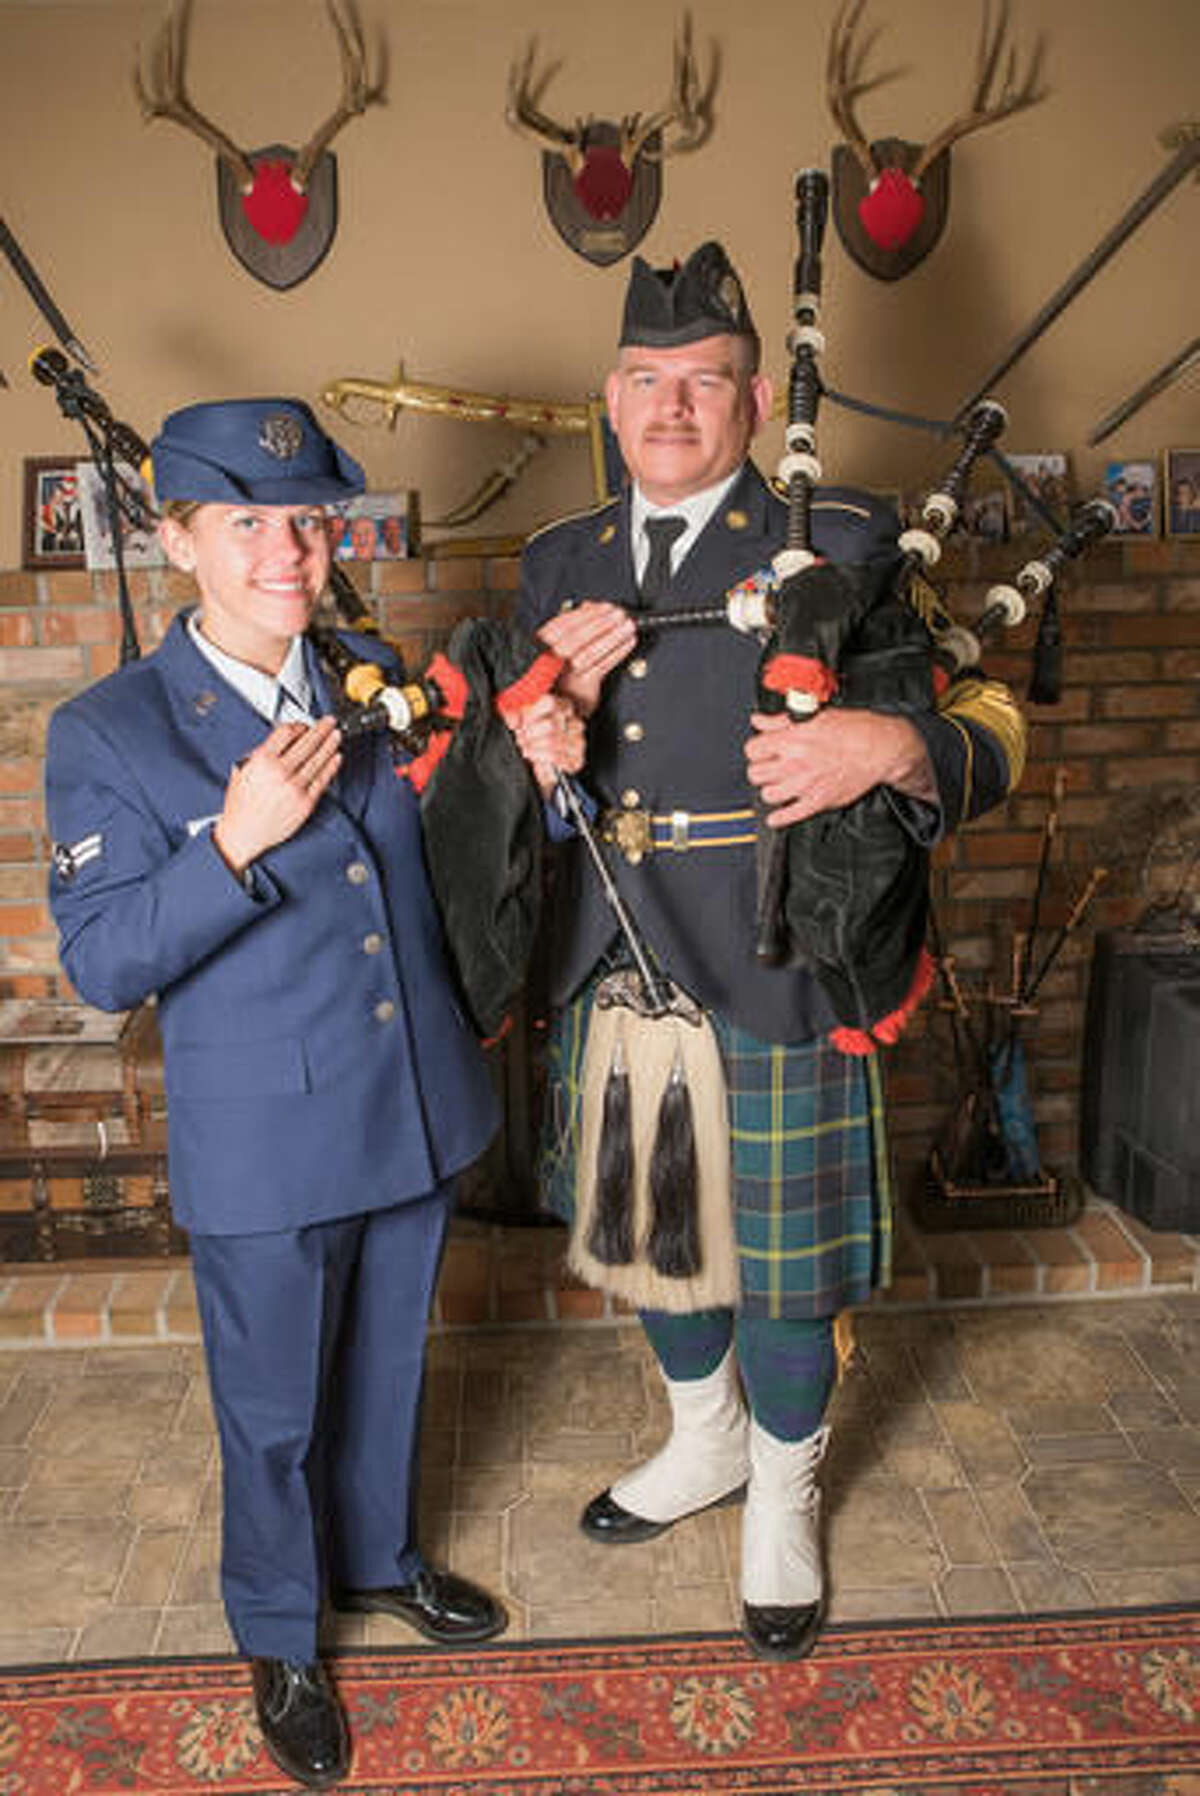 In this Nov. 7, 2016 photo, Air Guard Senior Airman Mariah Connell and her father, Sgt. 1st Class Michael Connell pose for a photo in a living room holding their military bagpipes in Reno, Nev. Michael Connell served for the Nevada Air National Guard, and now he serves in the U.S. Army. Connell, the only military bagpiper in Nevada, will retire by the end of this year, reported the Reno Gazette-Journal. After he retires, his daughter, Mariah Connell, 23, will take over as the only military piper in Nevada. (Mike Higdon/The Reno Gazette-Journal via AP)